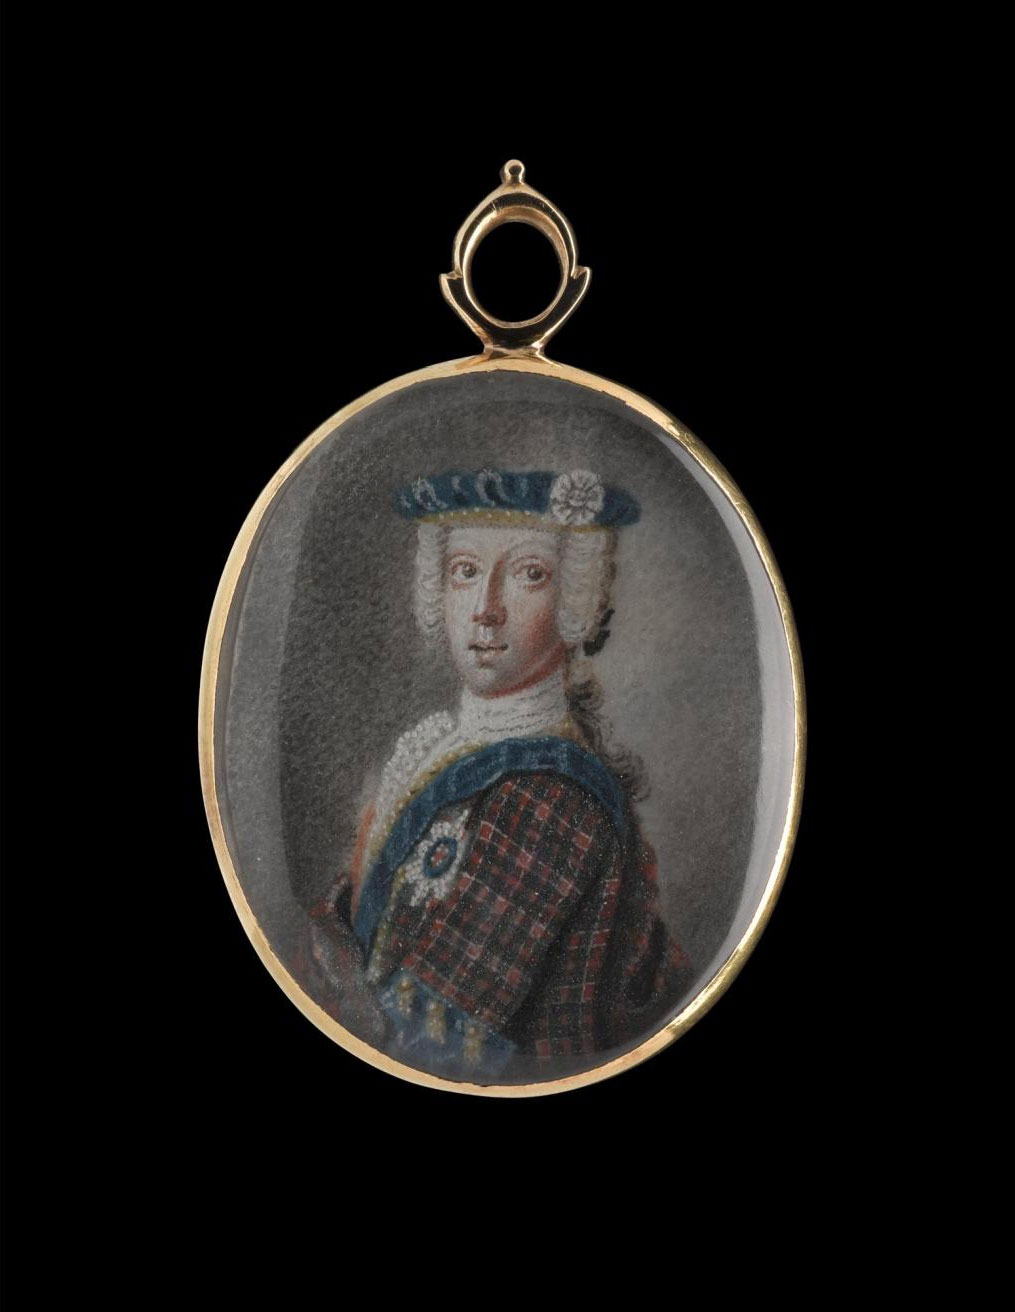 Four pieces of the prince's hair are attached to the reverse of this gold locket.